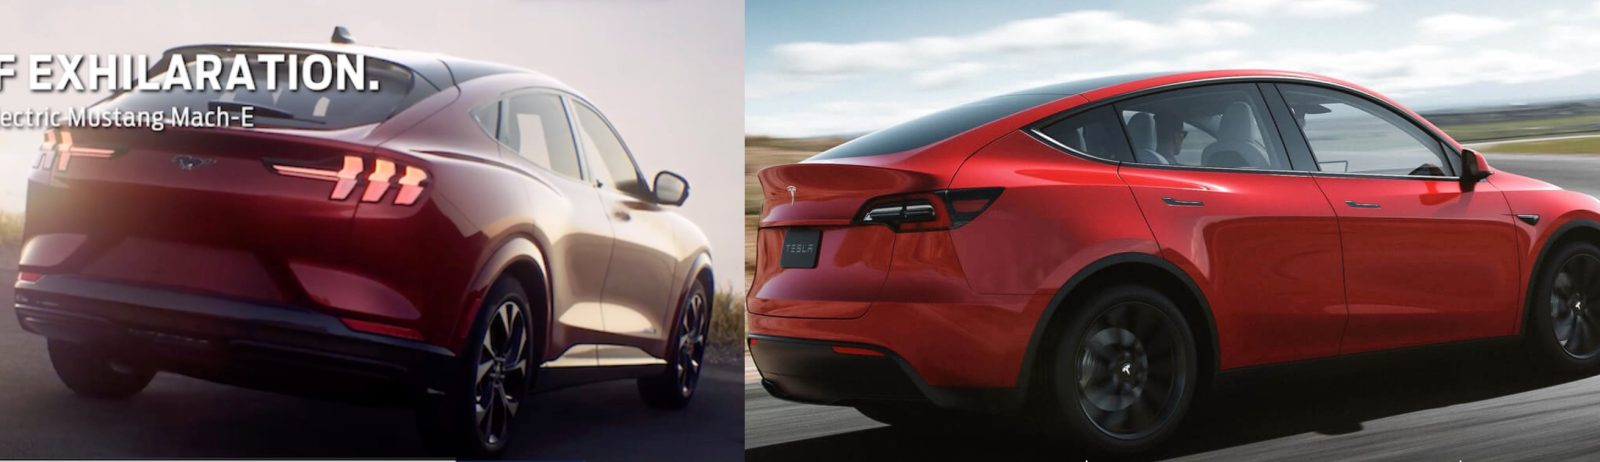 Tesla Model Y vs. Ford Mustang Mach-E specs comparison